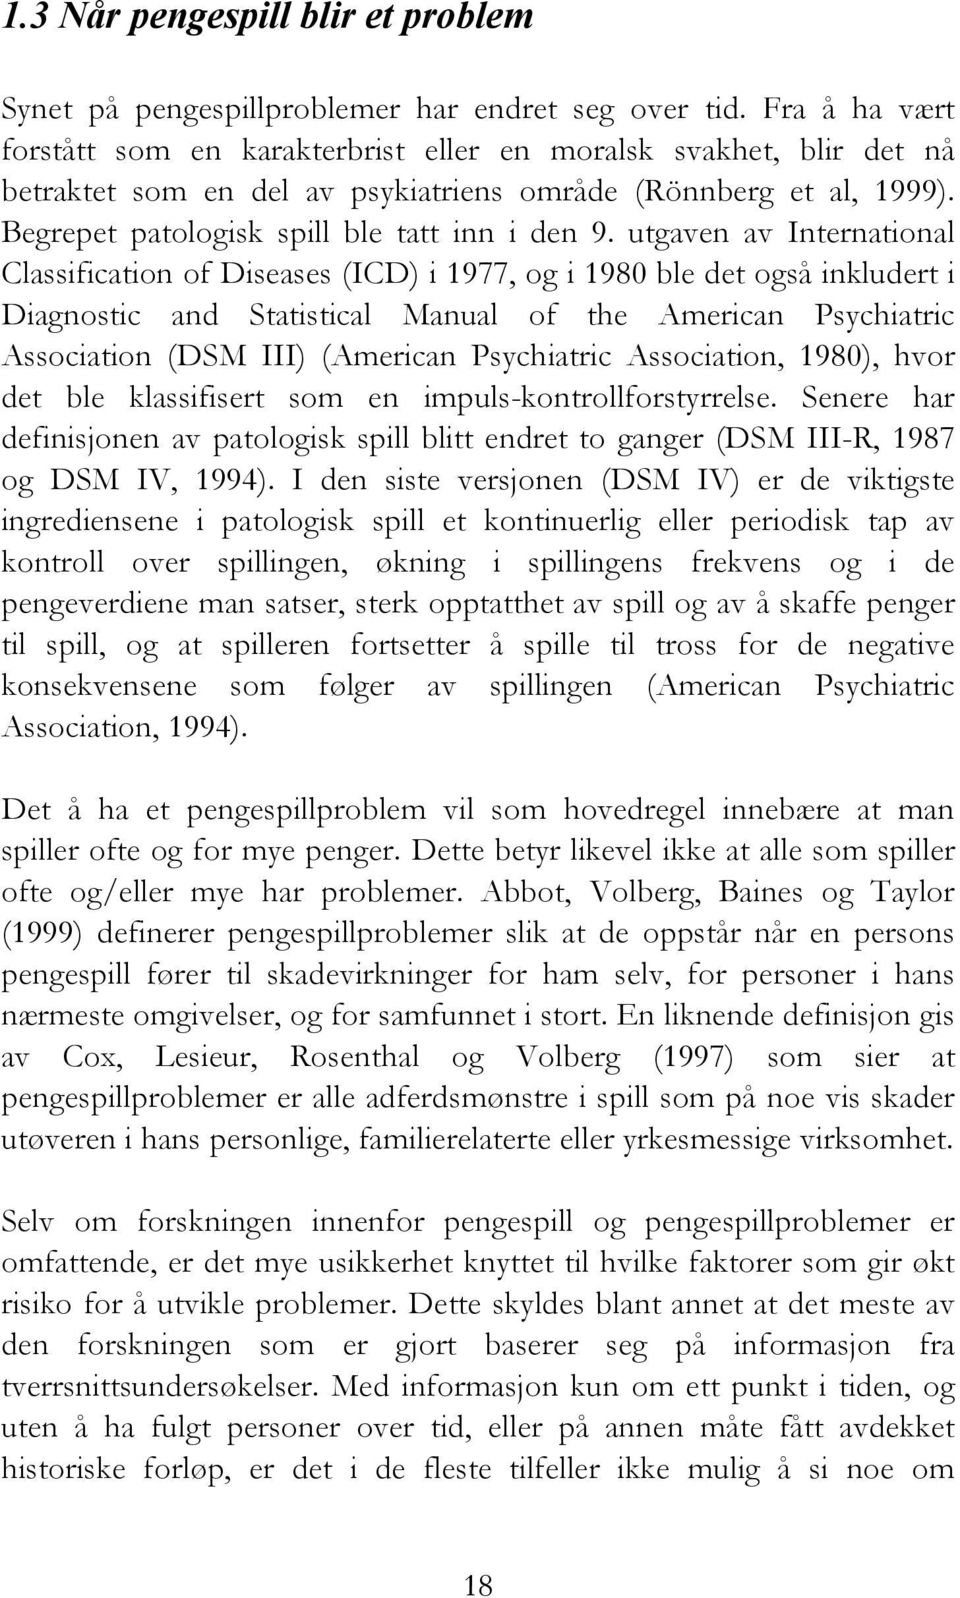 utgaven av International Classification of Diseases (ICD) i 1977, og i 1980 ble det også inkludert i Diagnostic and Statistical Manual of the American Psychiatric Association (DSM III) (American